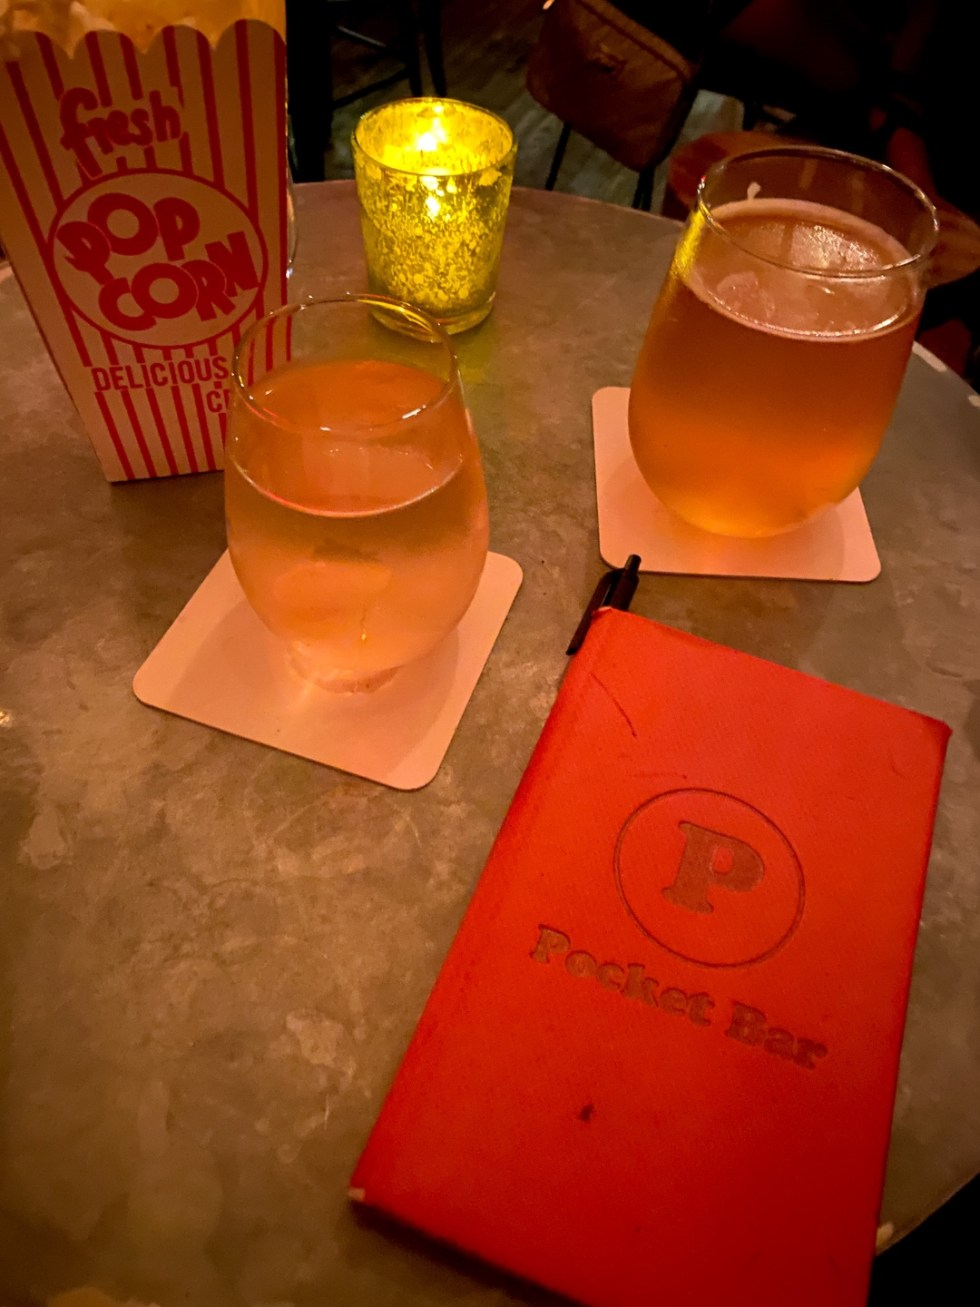 NYC Summer Weekend: Things to Do in NYC in the Summer - I'm Fixin' To - @imfixintoblog   NYC Summer Weekend by popular NC travel blog, I'm Fixin' To: image of a pocket bar menu and stemless wine glasses.